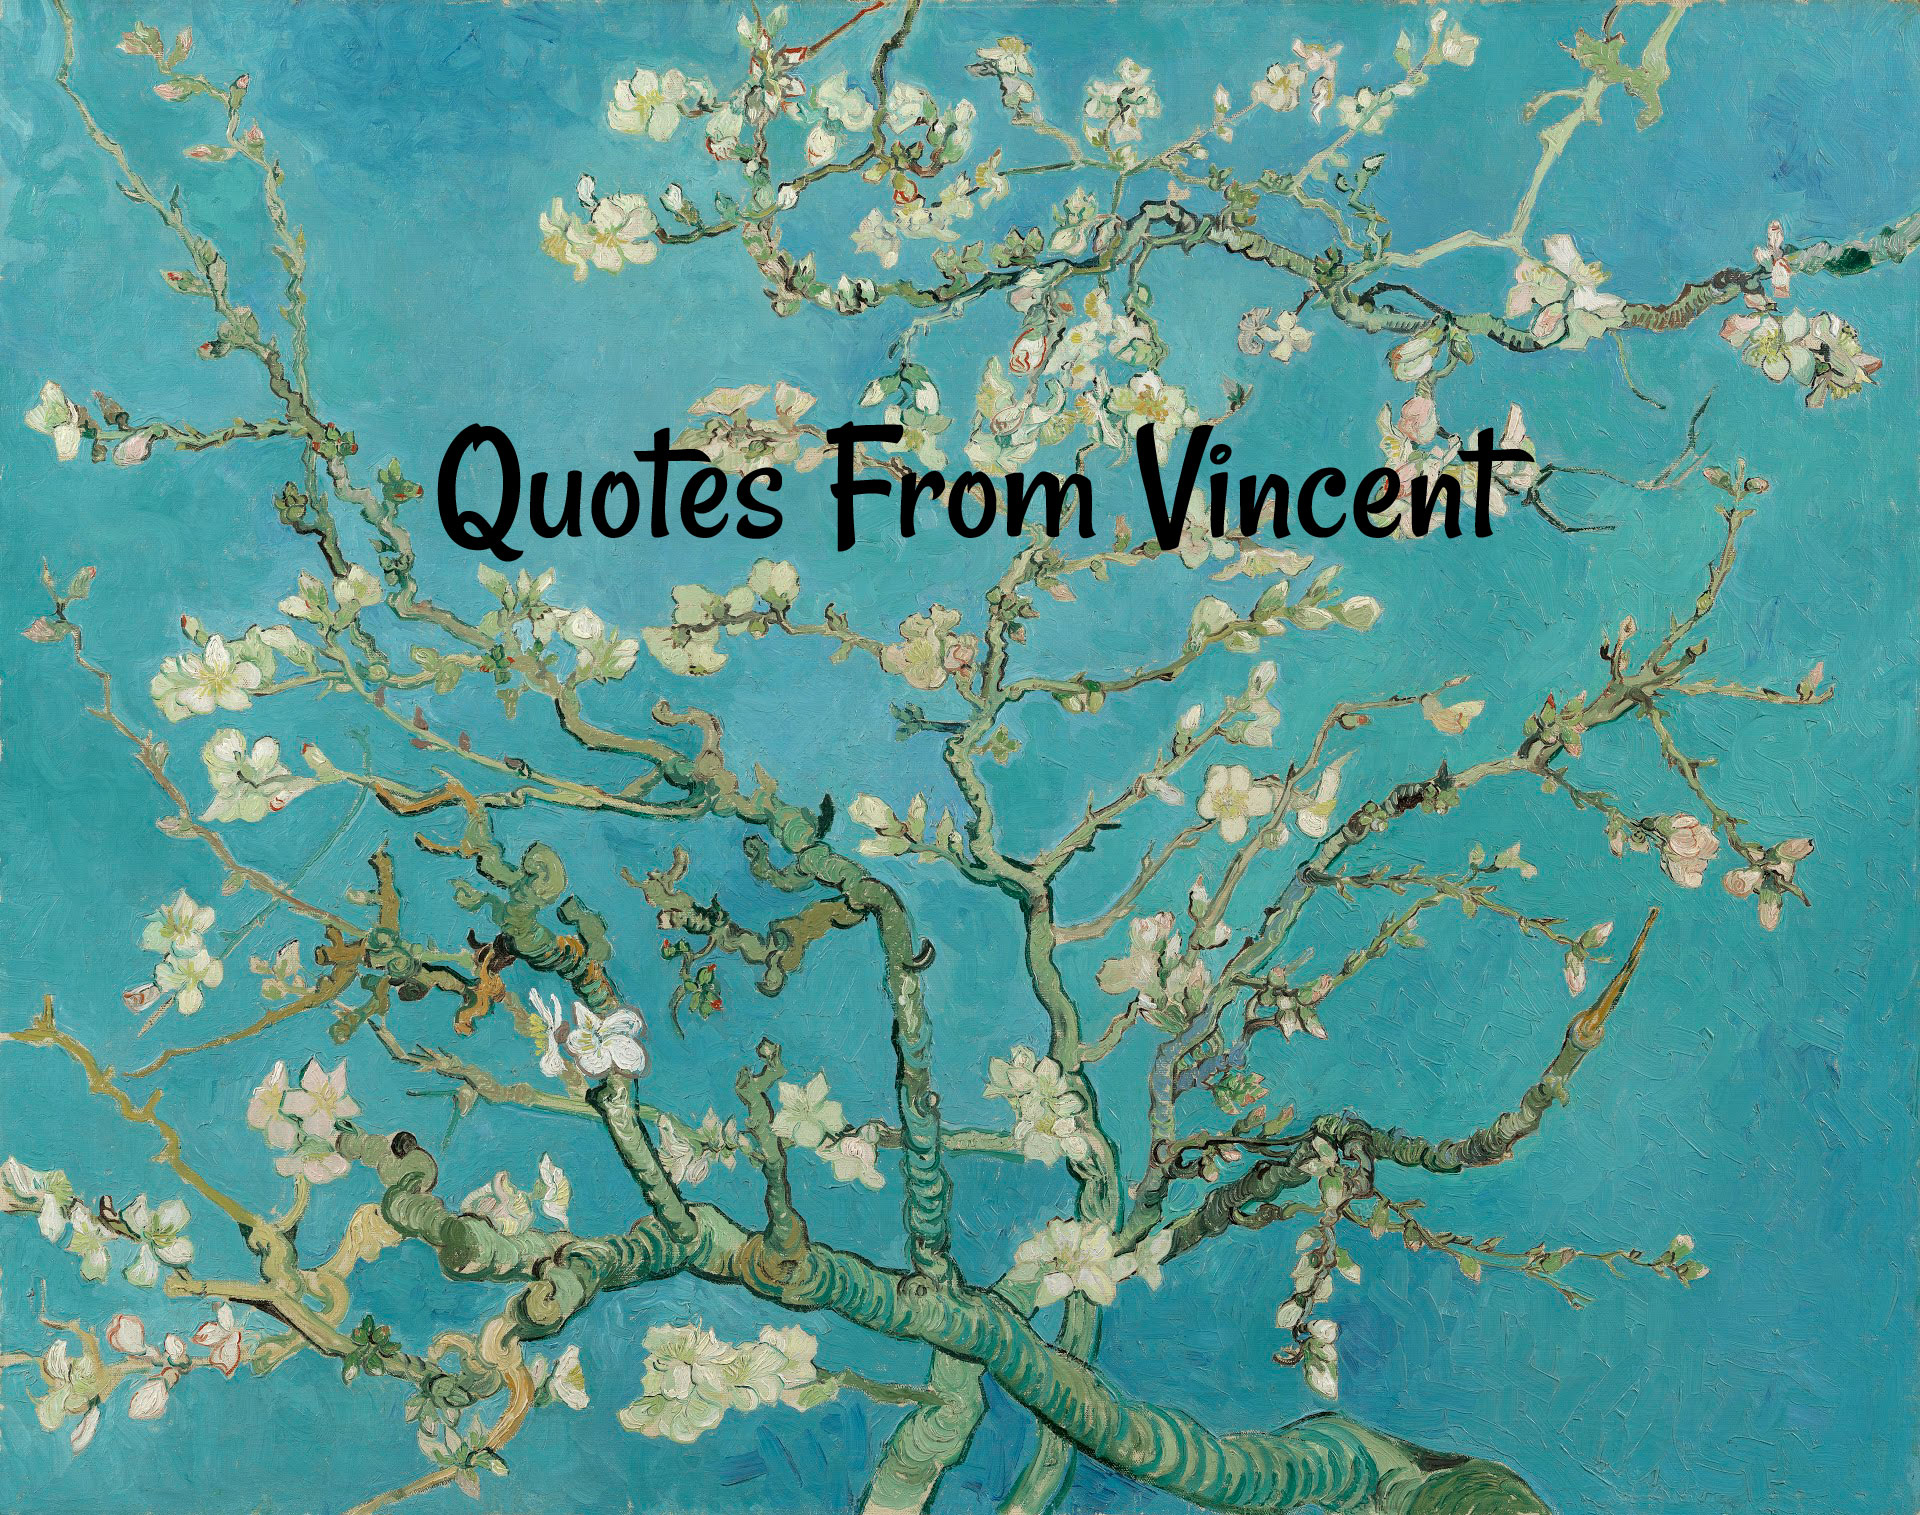 25 Quotes From Vincent For Dreamers On Starry Starry Nights